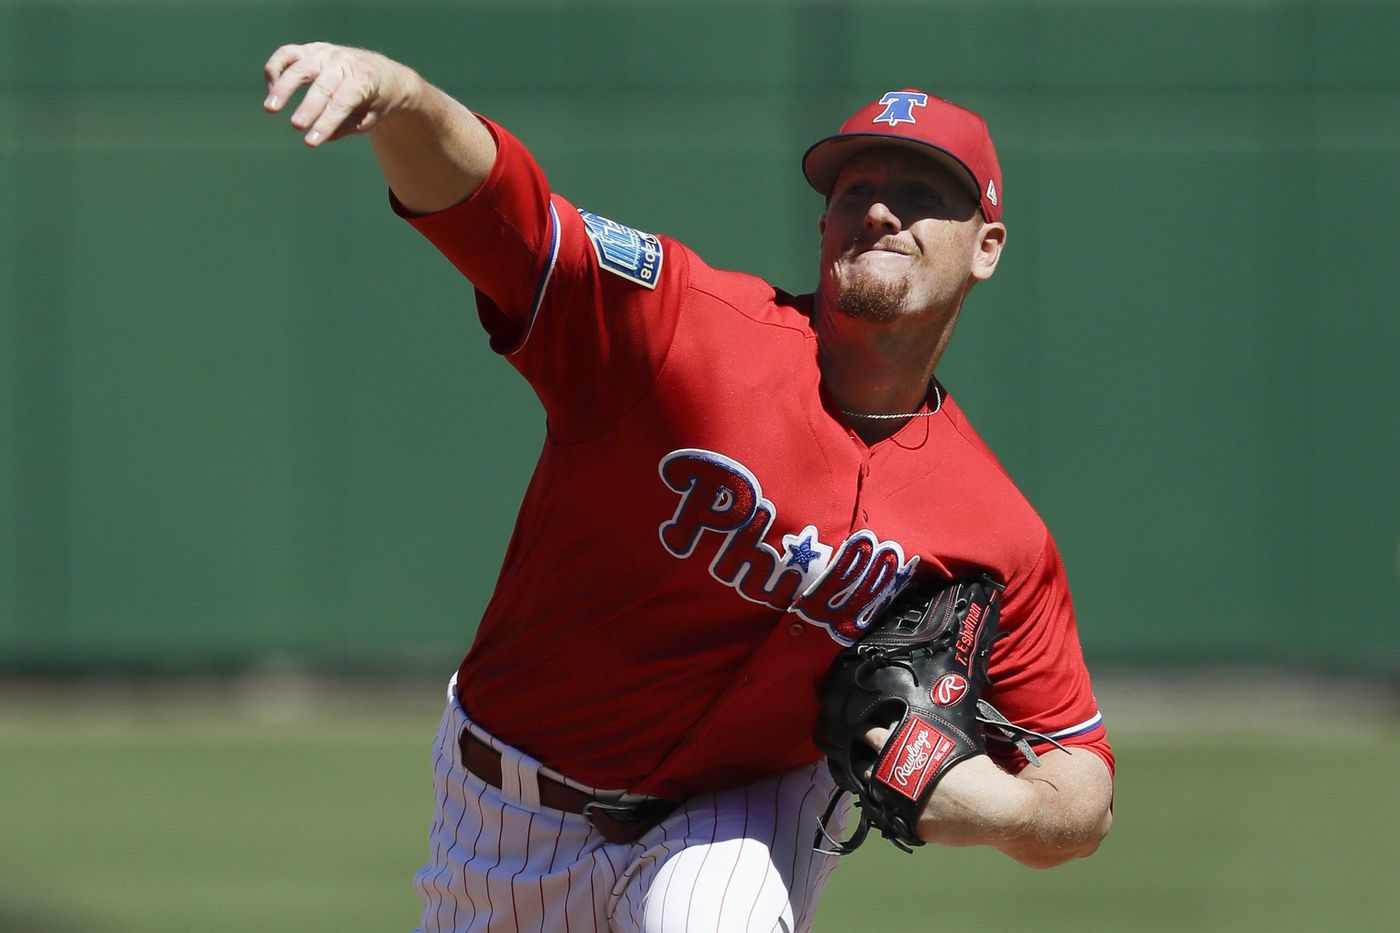 Phillies pitching prospect Tom Eshelman working through struggles